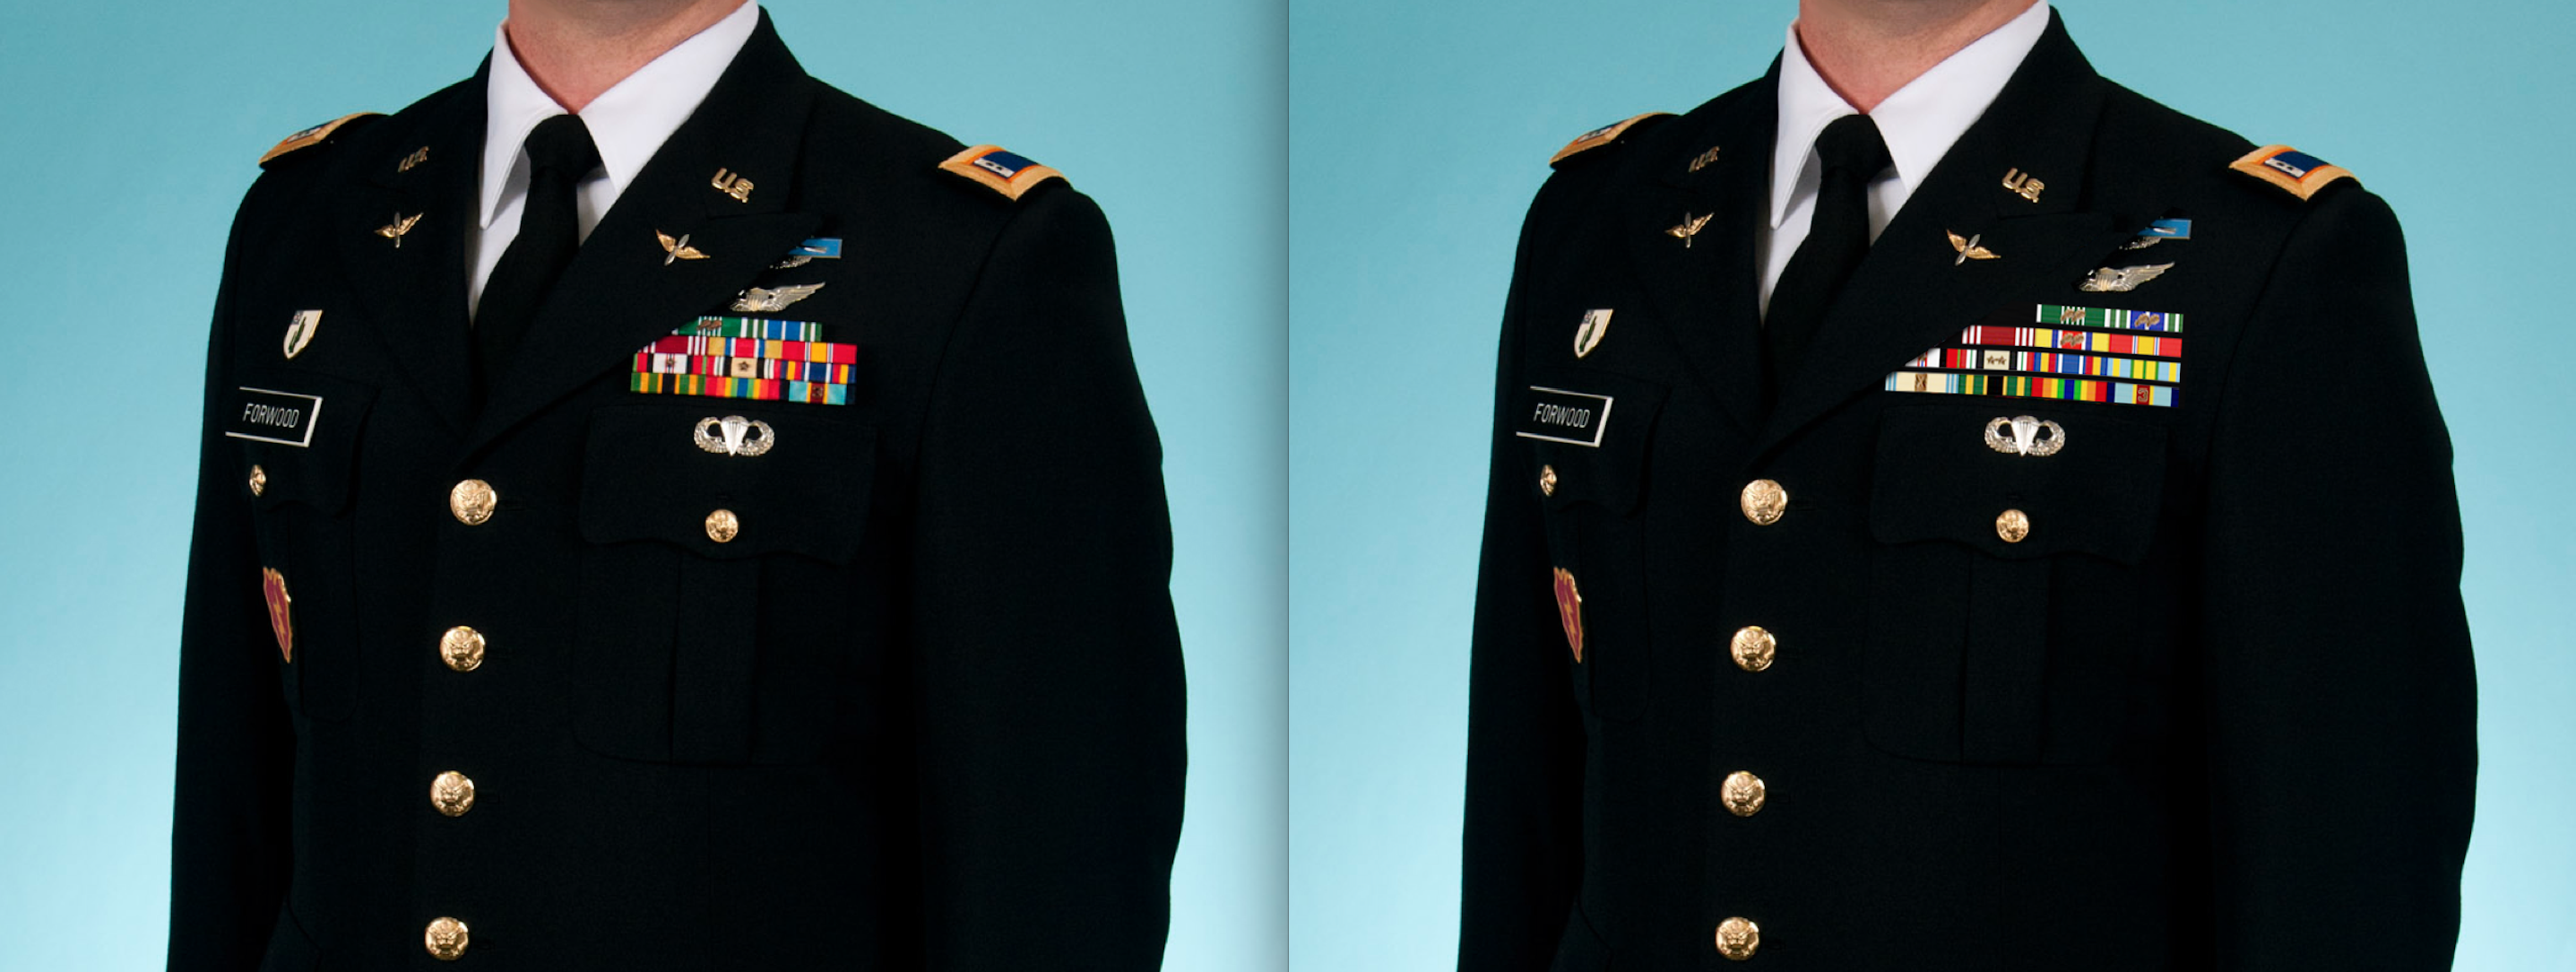 What is everyone's thought on wearing service ribbons in